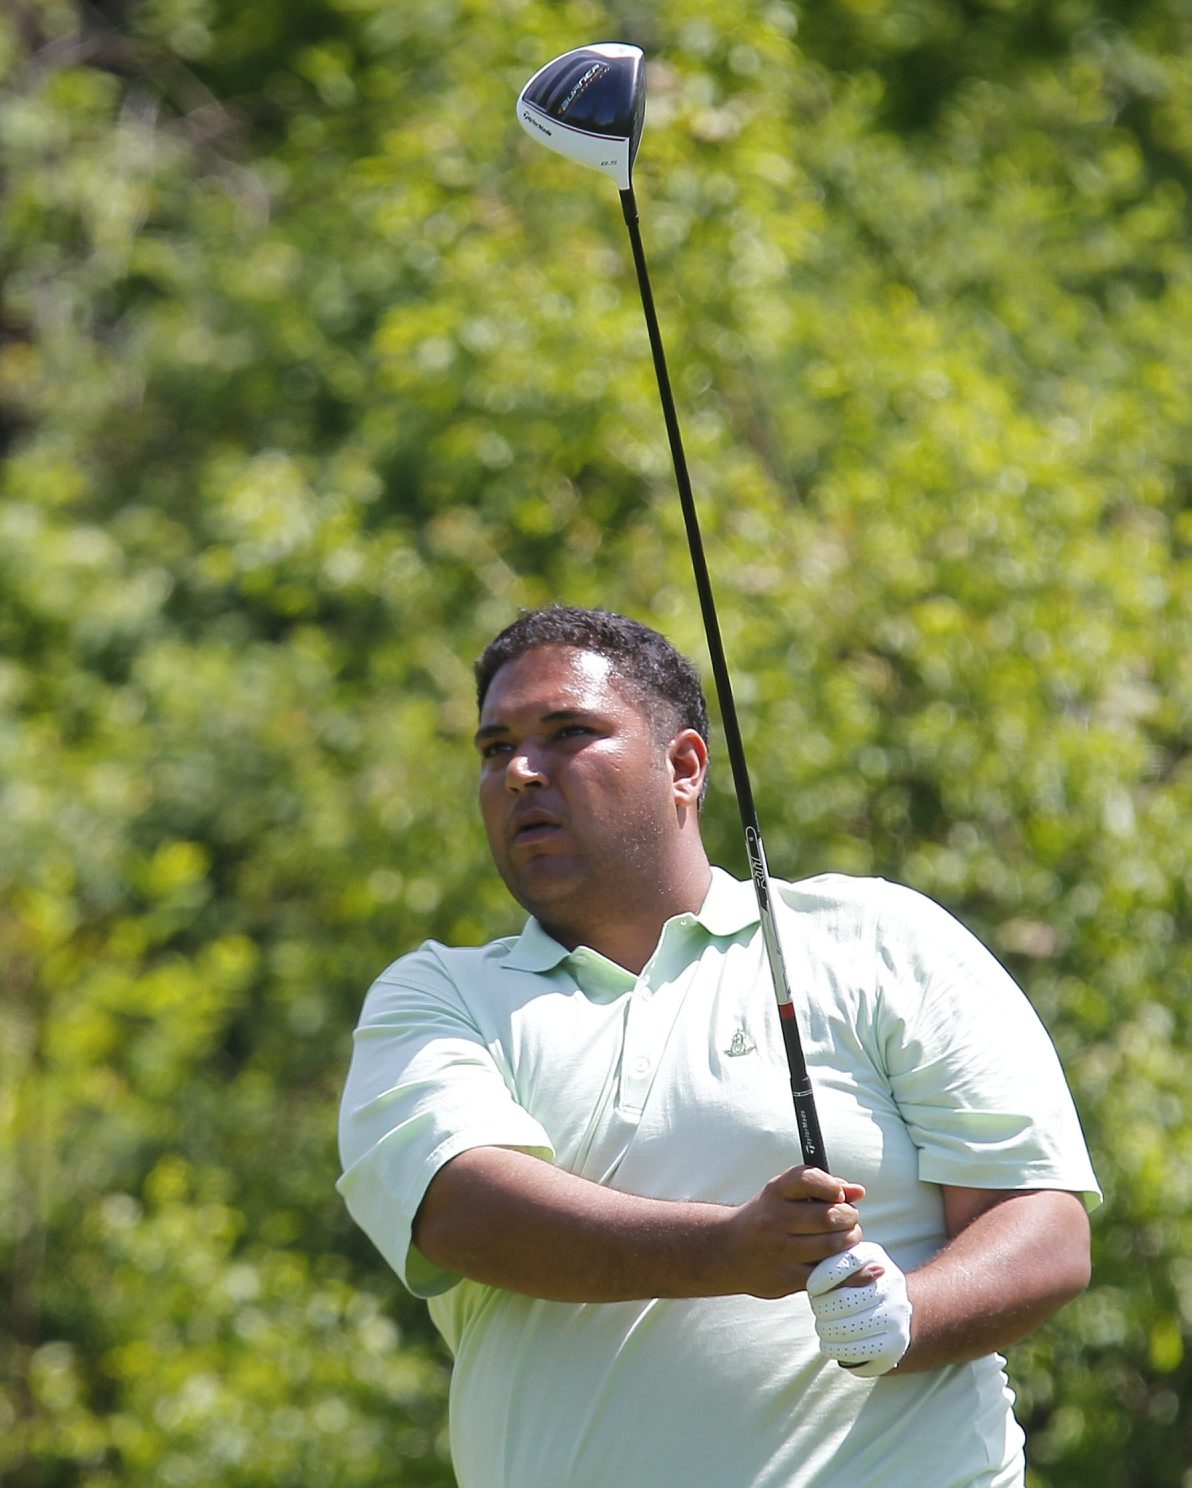 Defending Buffalo District champion Raman Luthra averages between 255-265 yards on his tee shots.